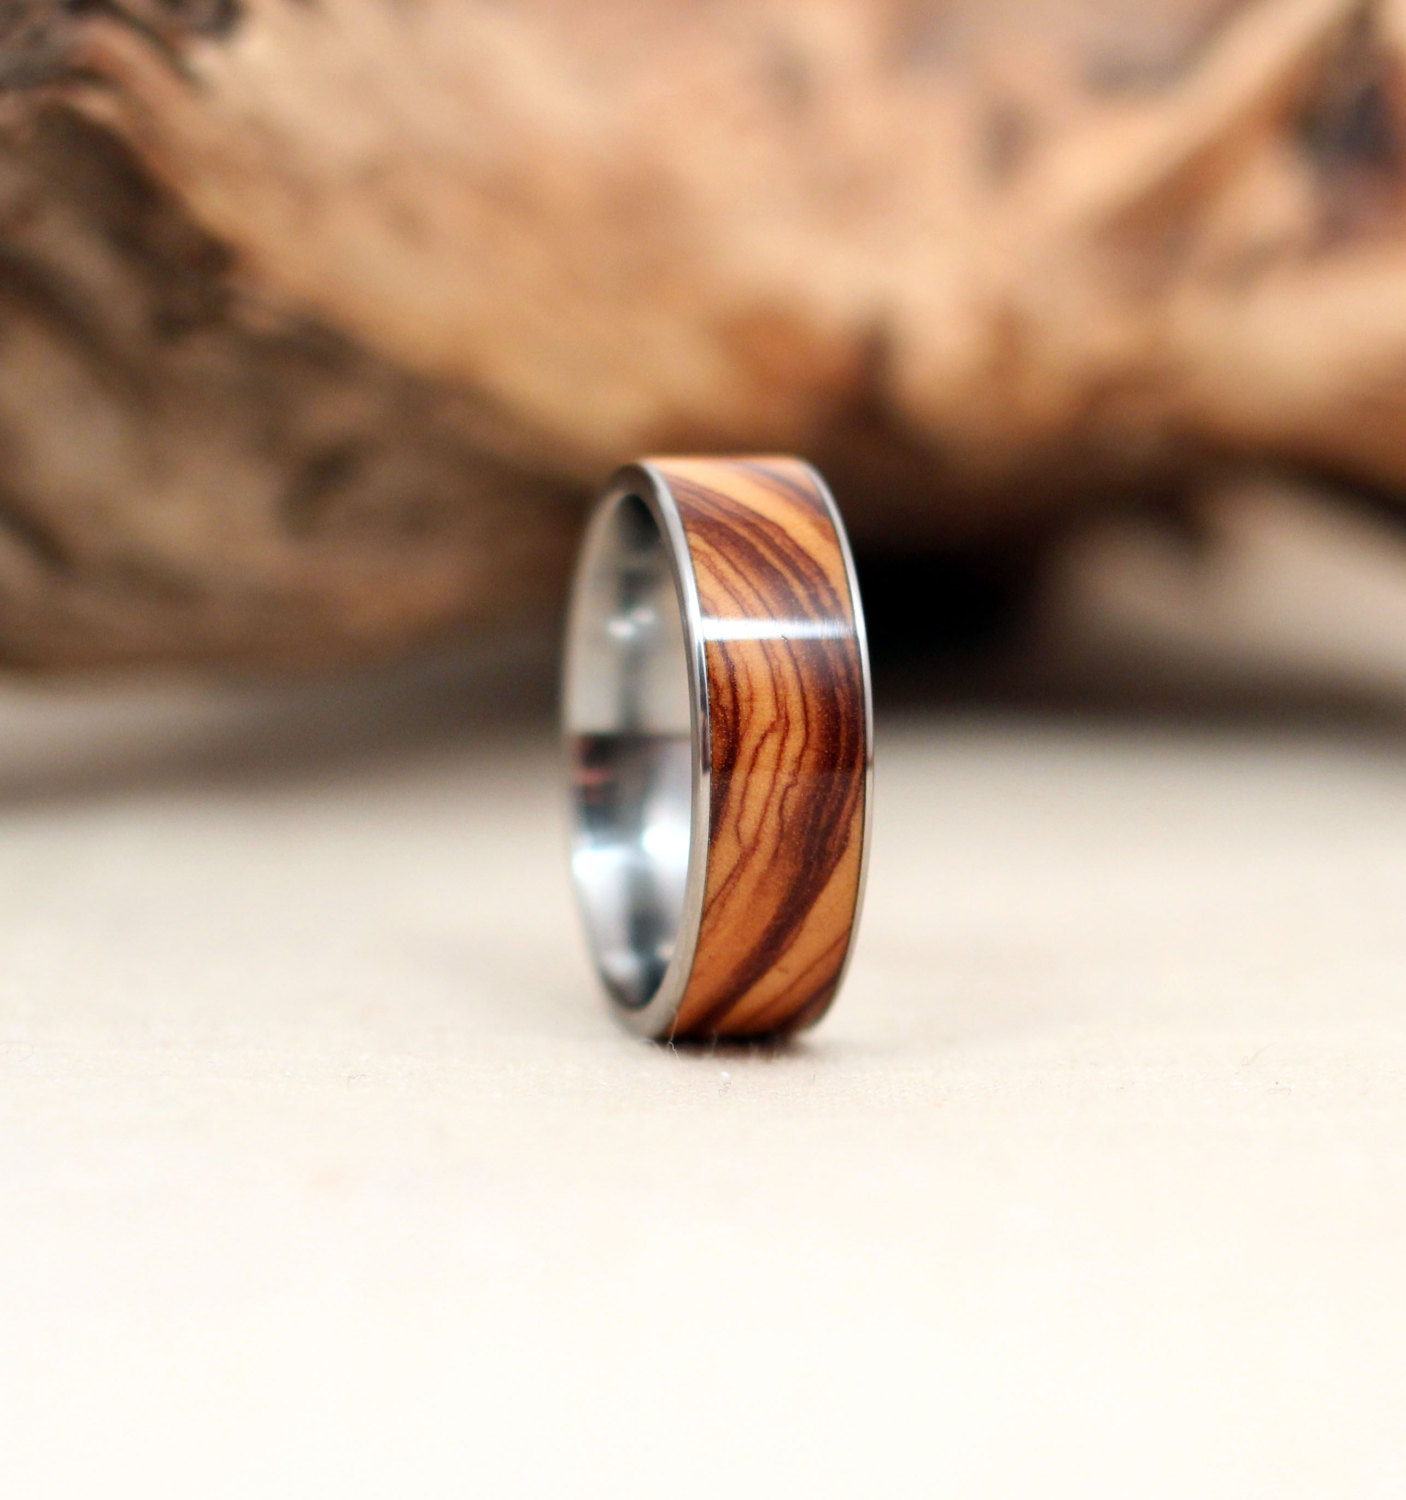 Oro di Mare ring no 225 driftwood brown golden unique gold gilded OOAK handmade art designer wood jewelry